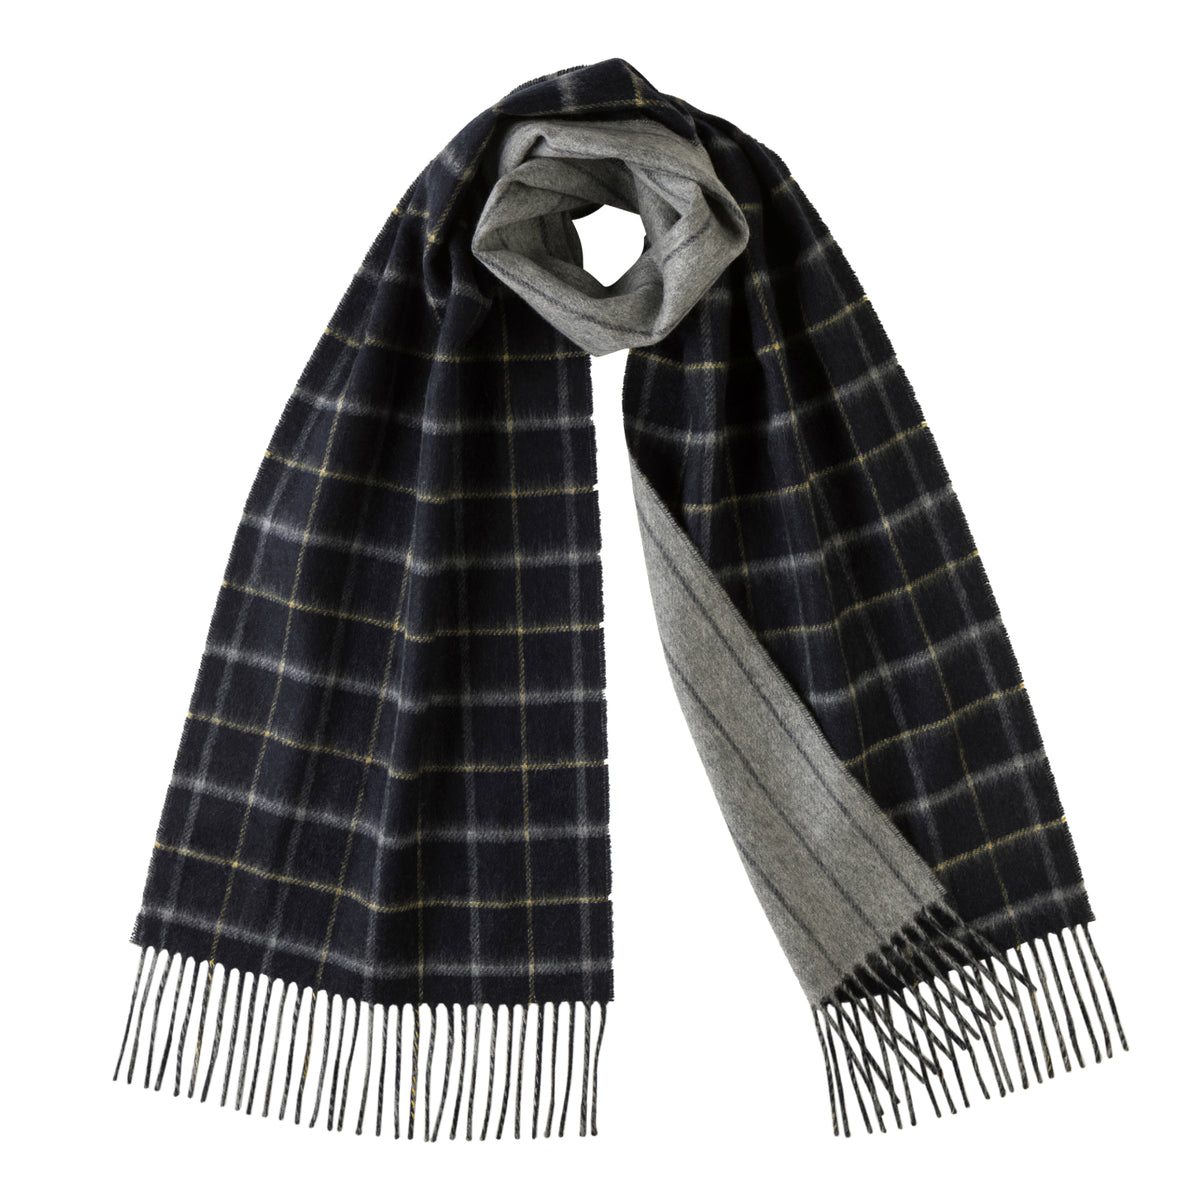 Johnsons of Elgin | Johnstons Cashmere | Double Windowpane Blue Grey Reversible Cashmere Scarf | buy at The Cashmere Choice | London